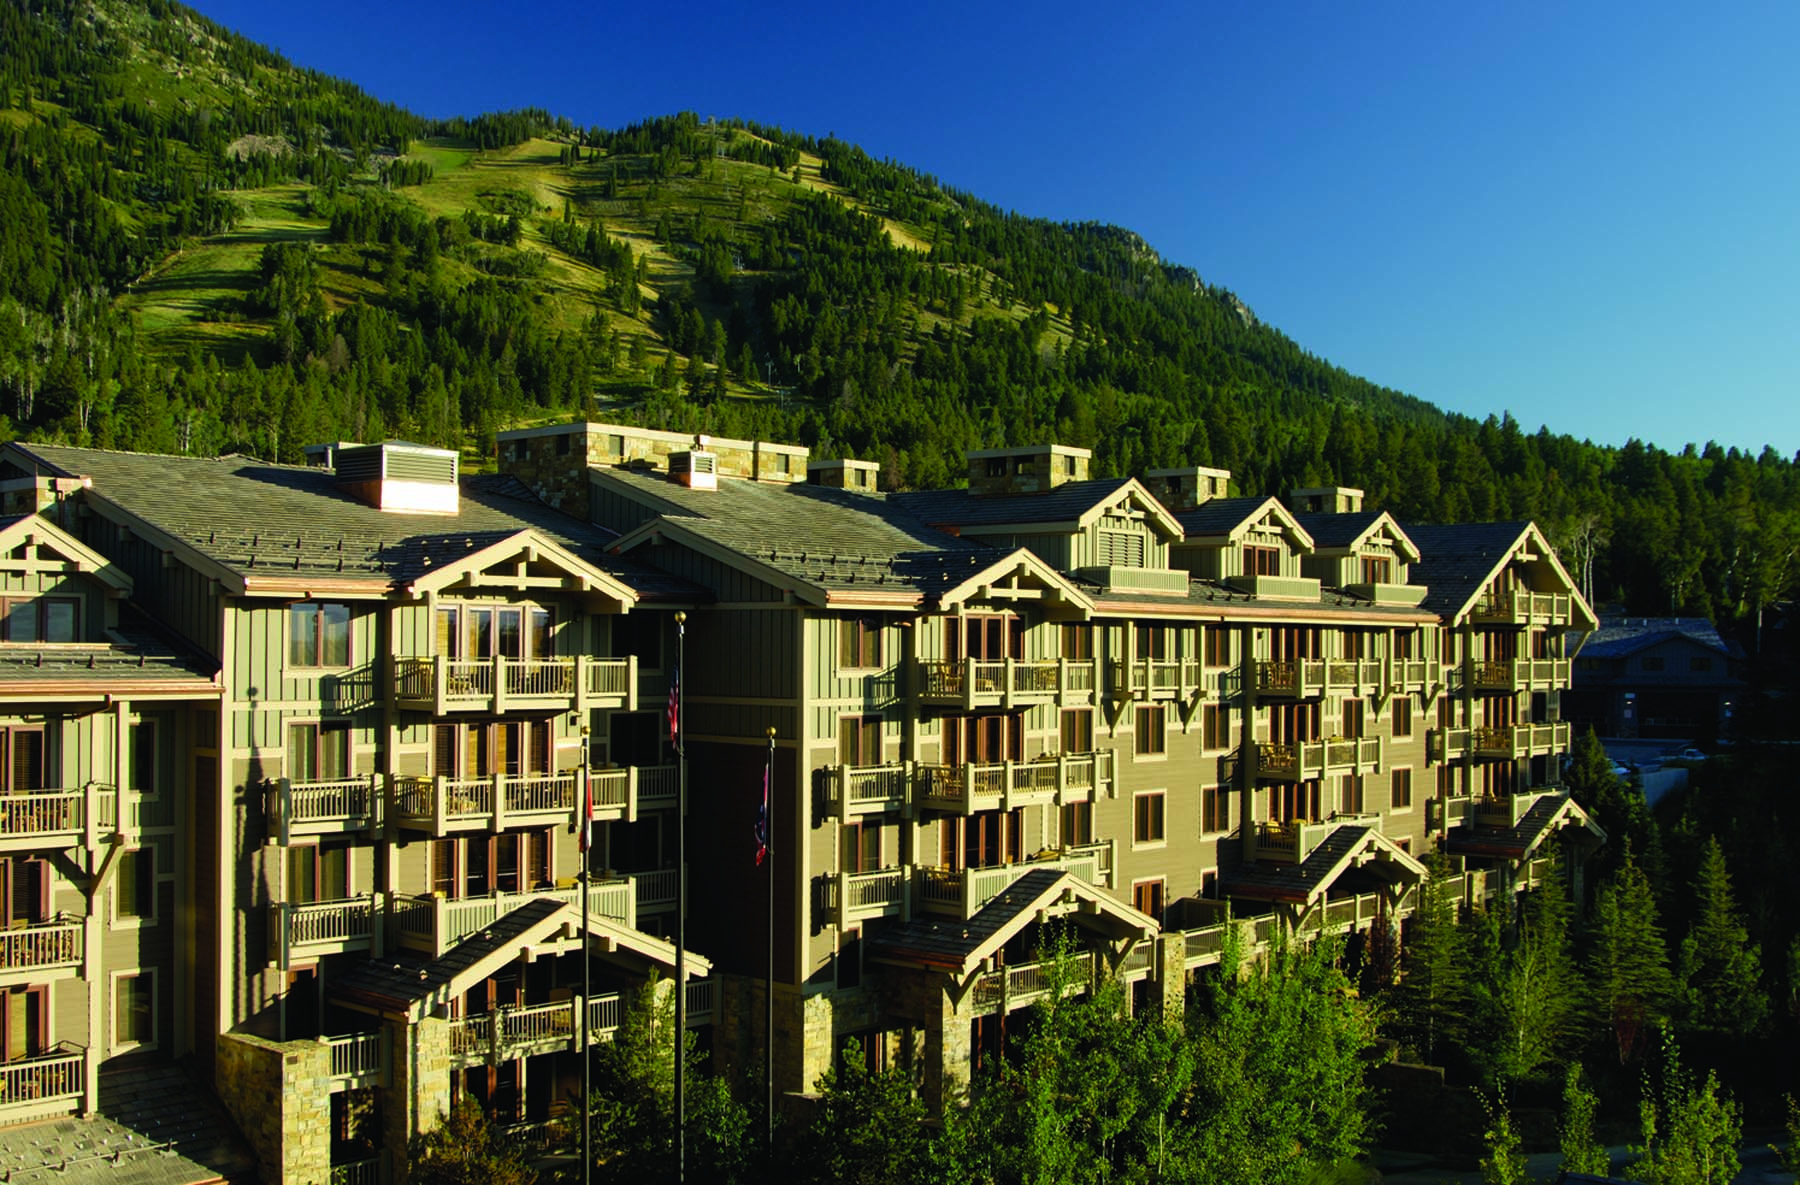 Eigentumswohnung für Verkauf beim Four Seasons Residence Club Ownership 7680 Granite Loop Road Unit #555 1/14th Teton Village, Wyoming, 83025 Jackson Hole, Vereinigte Staaten